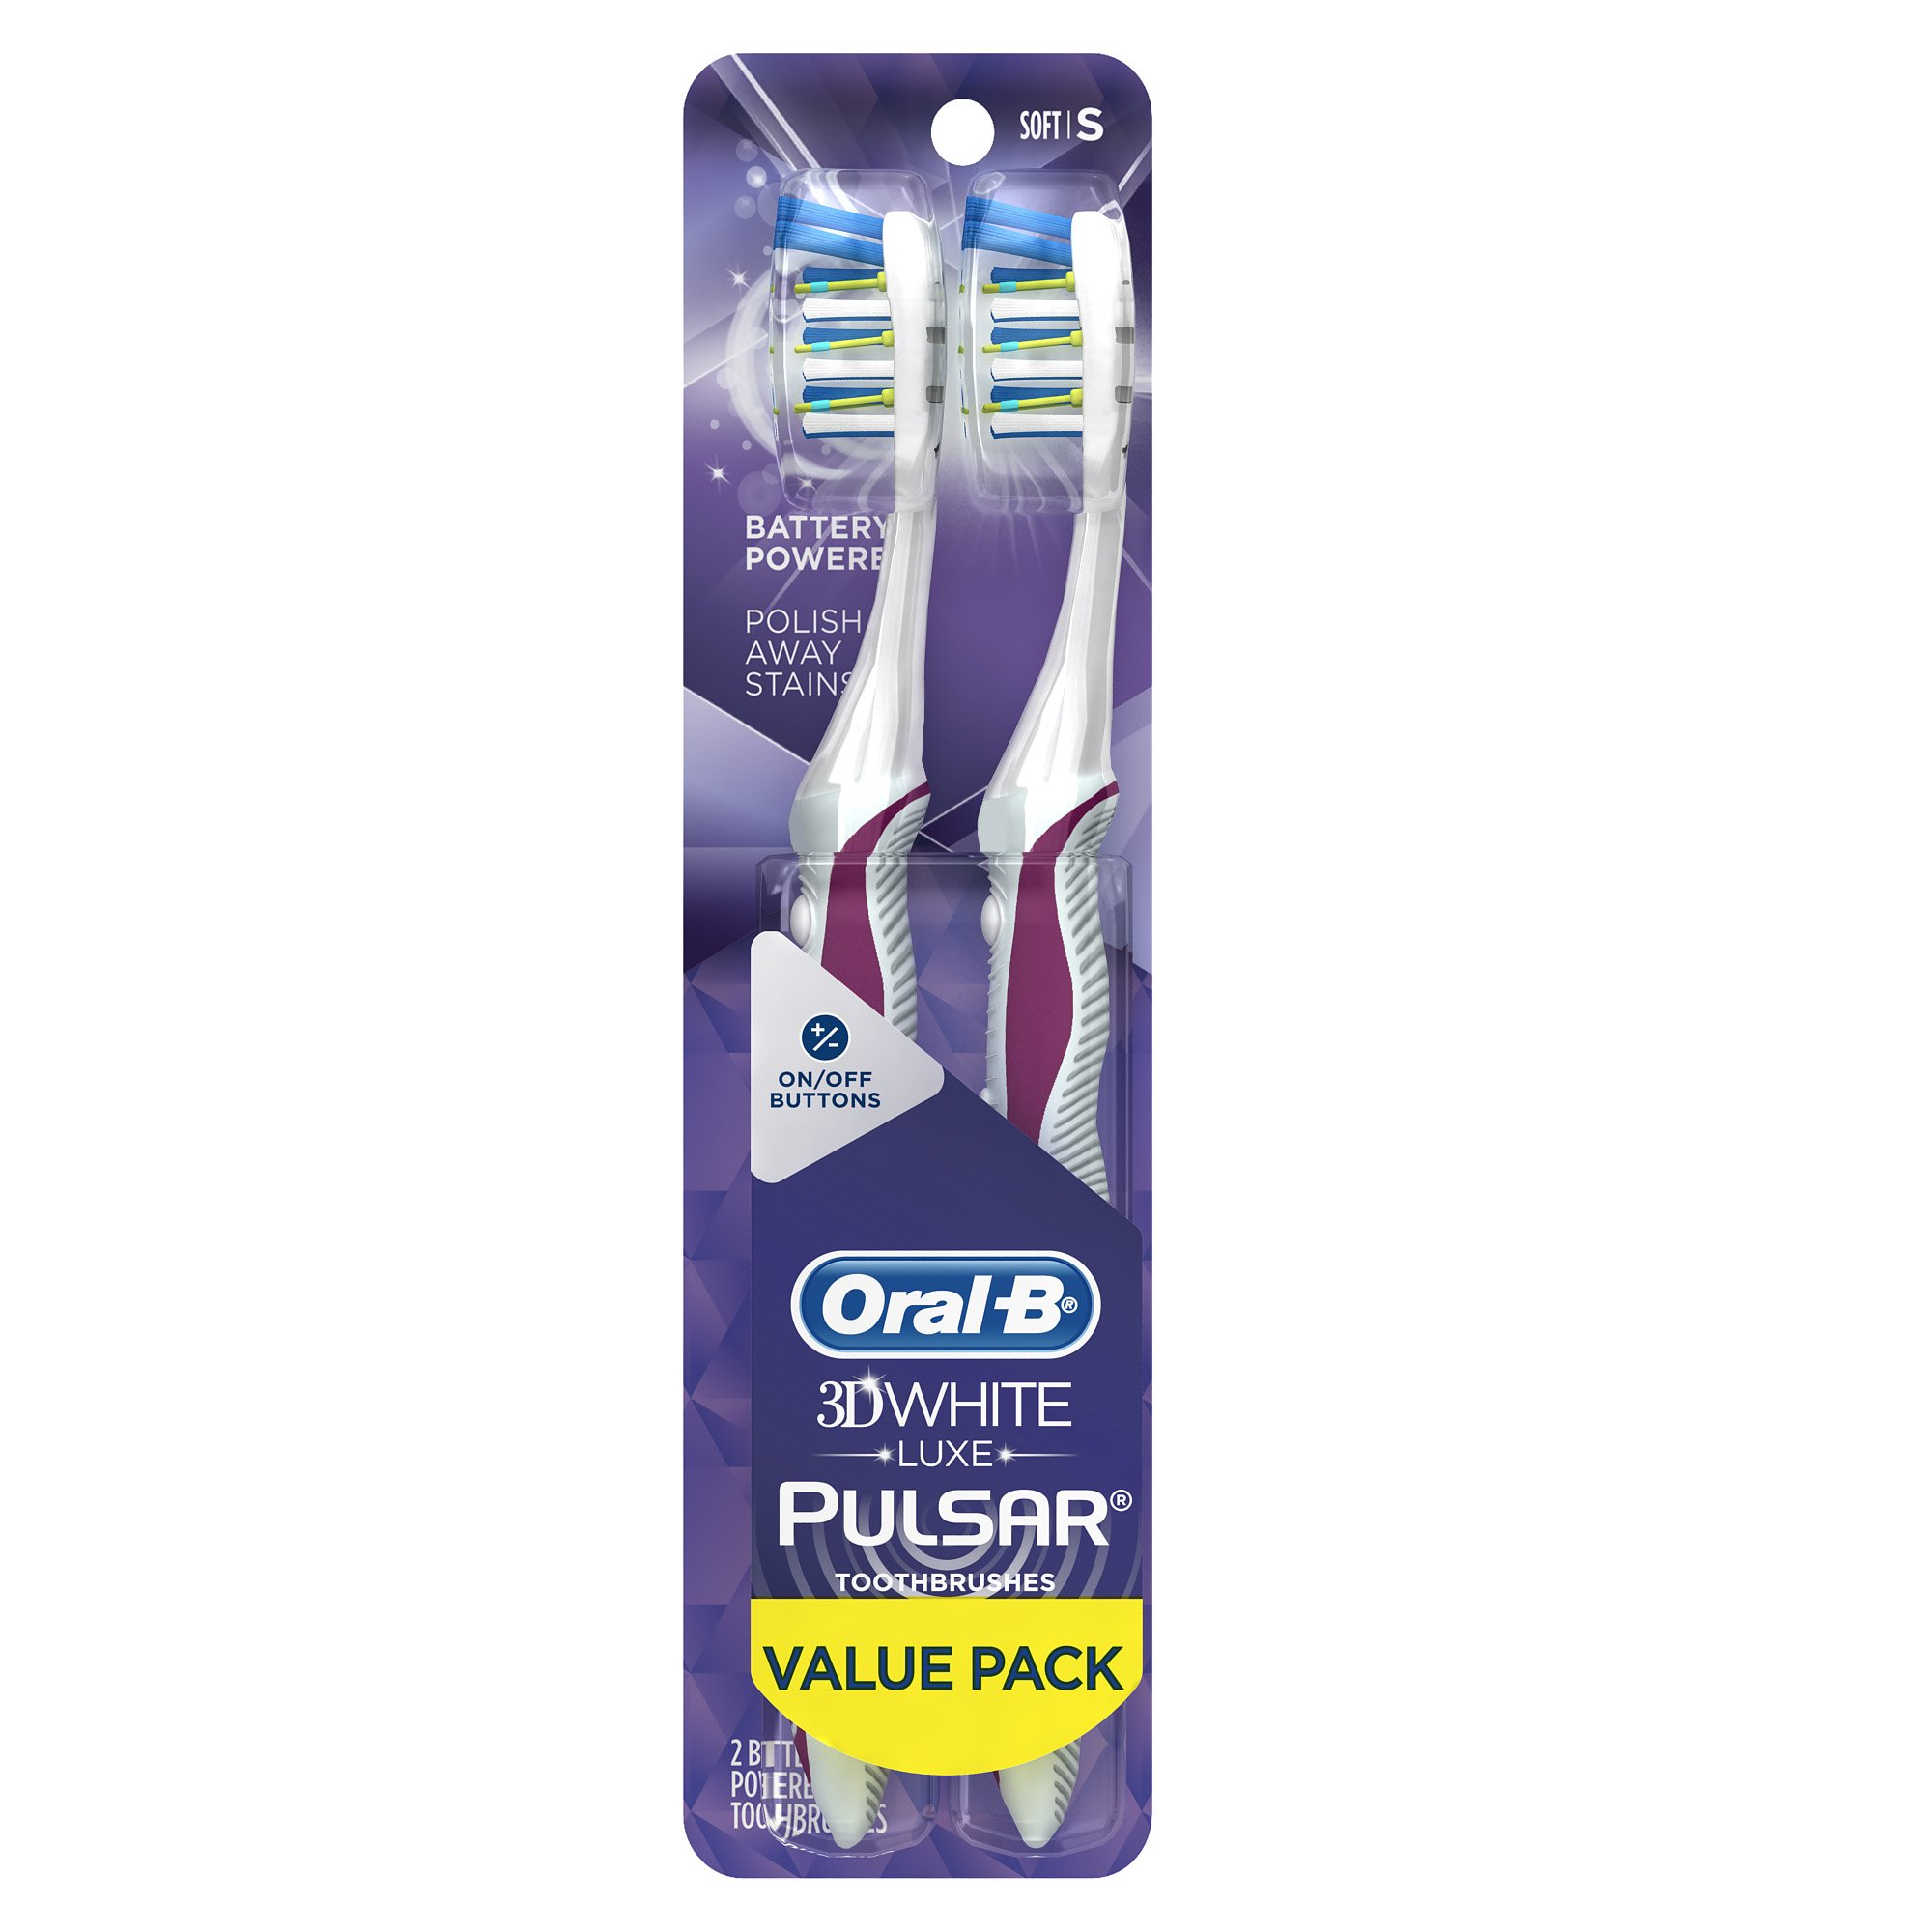 Oral-B Pulsar 3D White Luxe Battery Powered Toothbrush, Soft, 2 Count